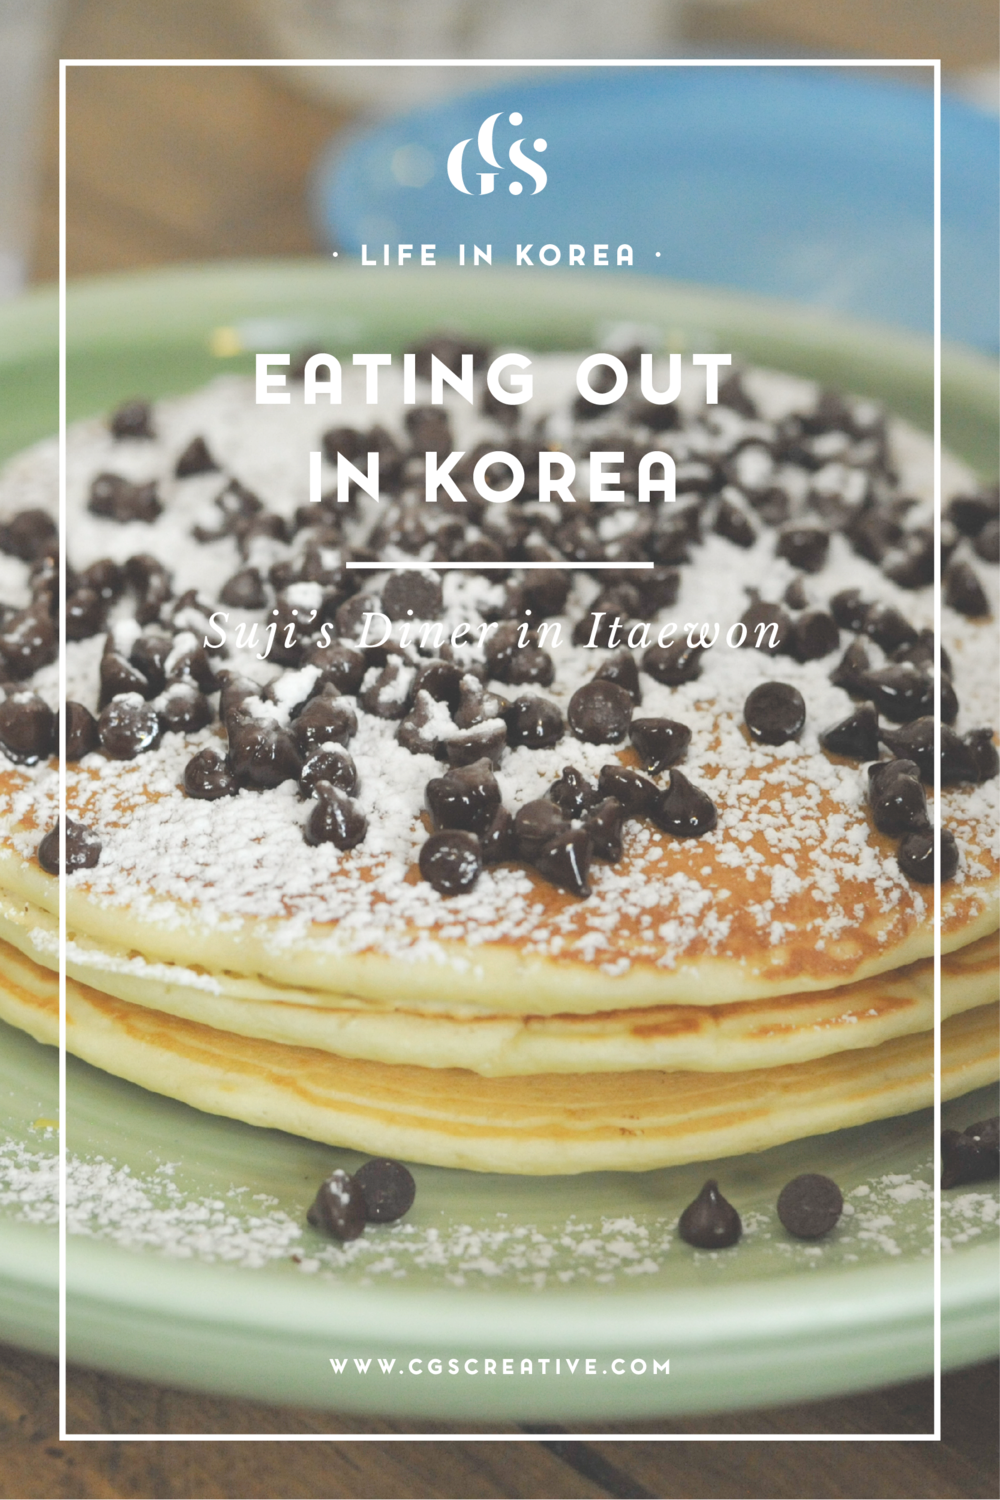 Sujis diner in Seoul, best brunch in Seoul, things to do in Seoul, Places to eat in Korea, western restuarants seoul, pancakes seoul, brunch korea